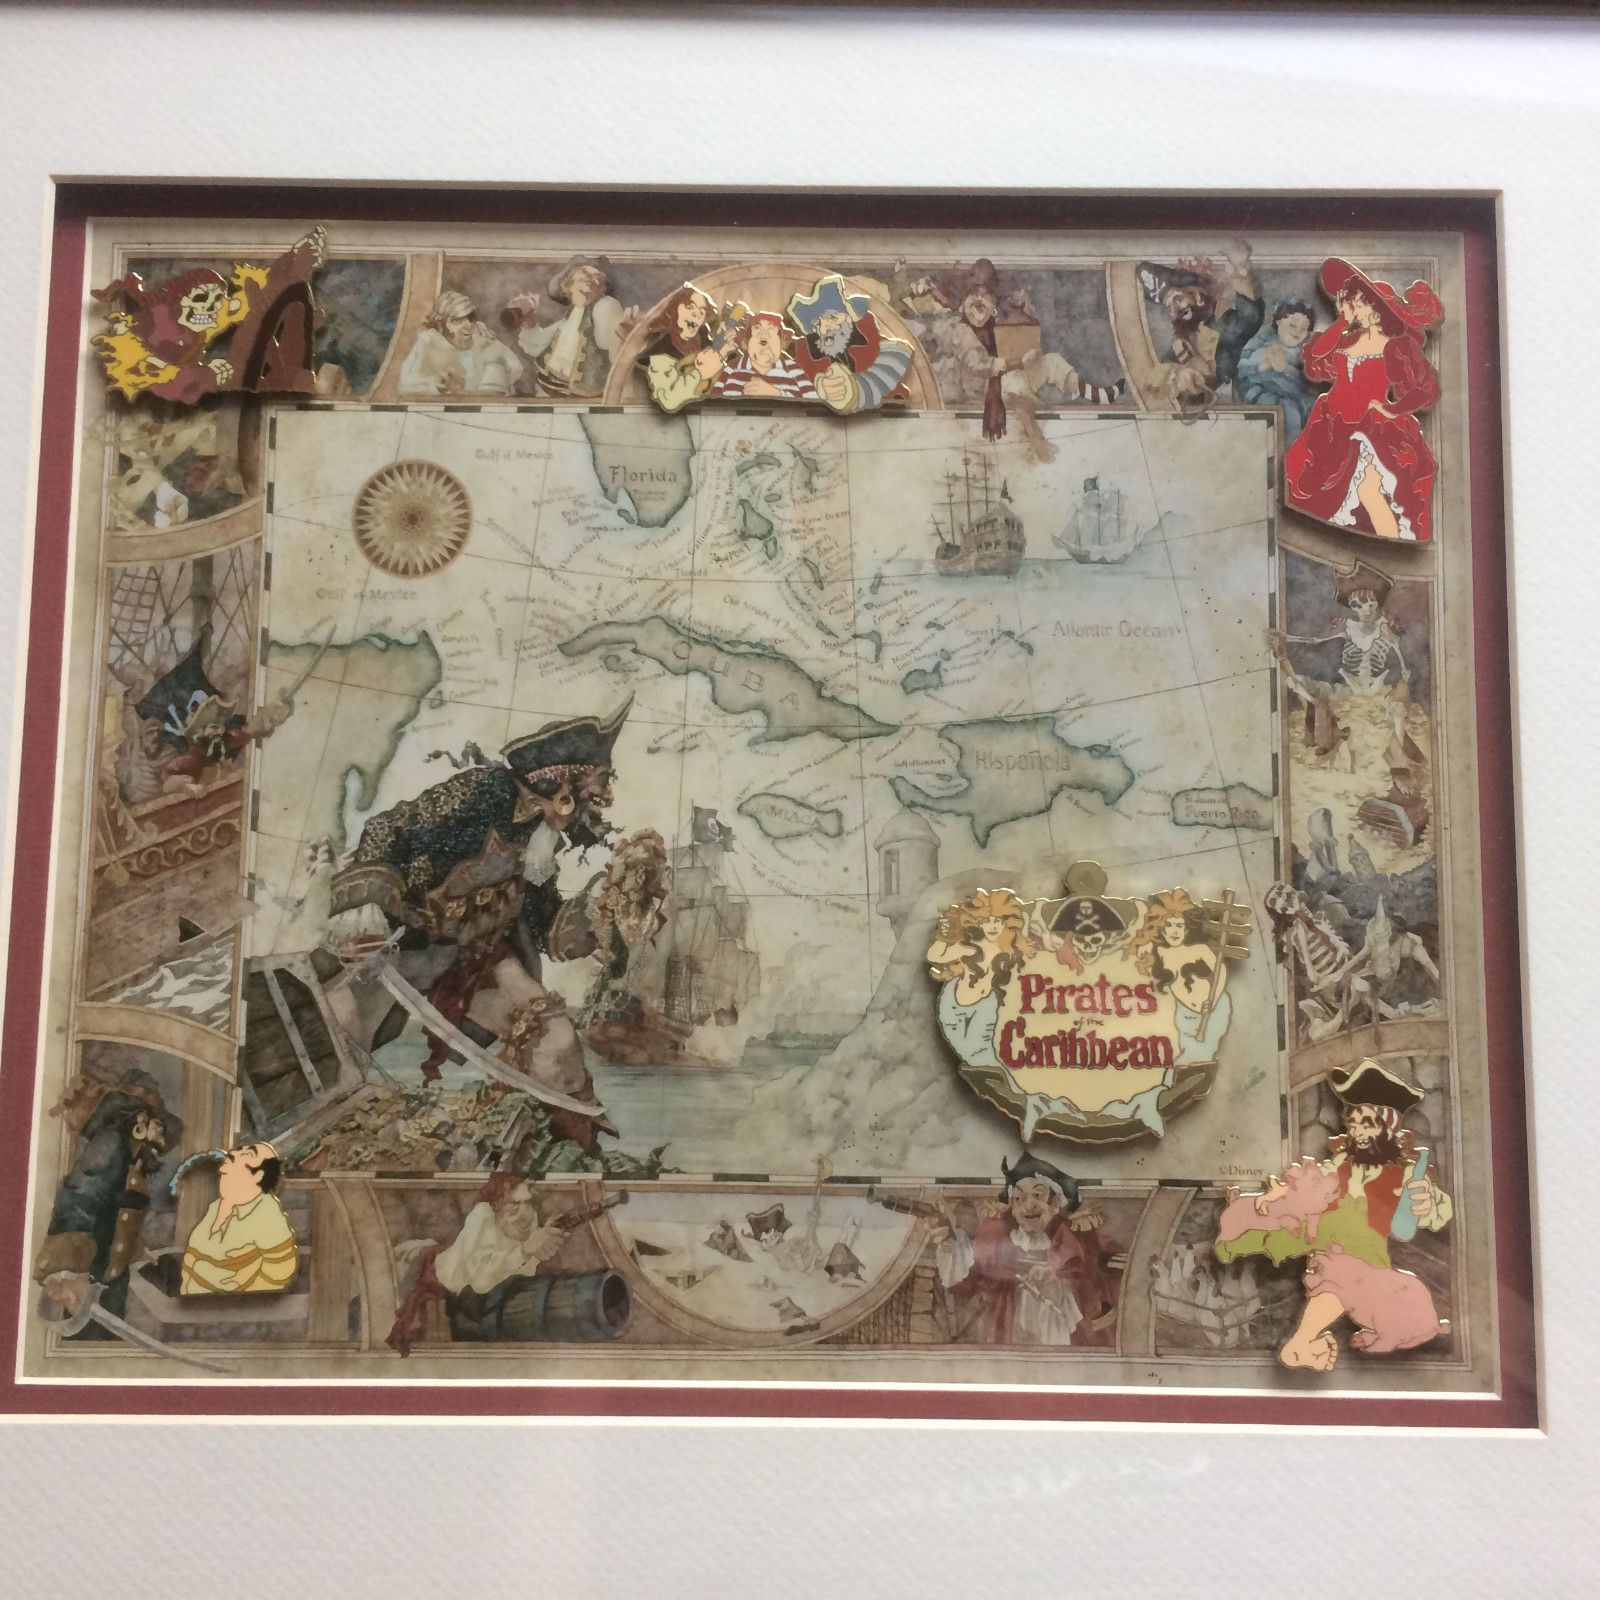 Disney dlr pirates of the caribbean attraction scene 6 pin disney dlr pirates of the caribbean attraction scene 6 pin framed set ebay gumiabroncs Images